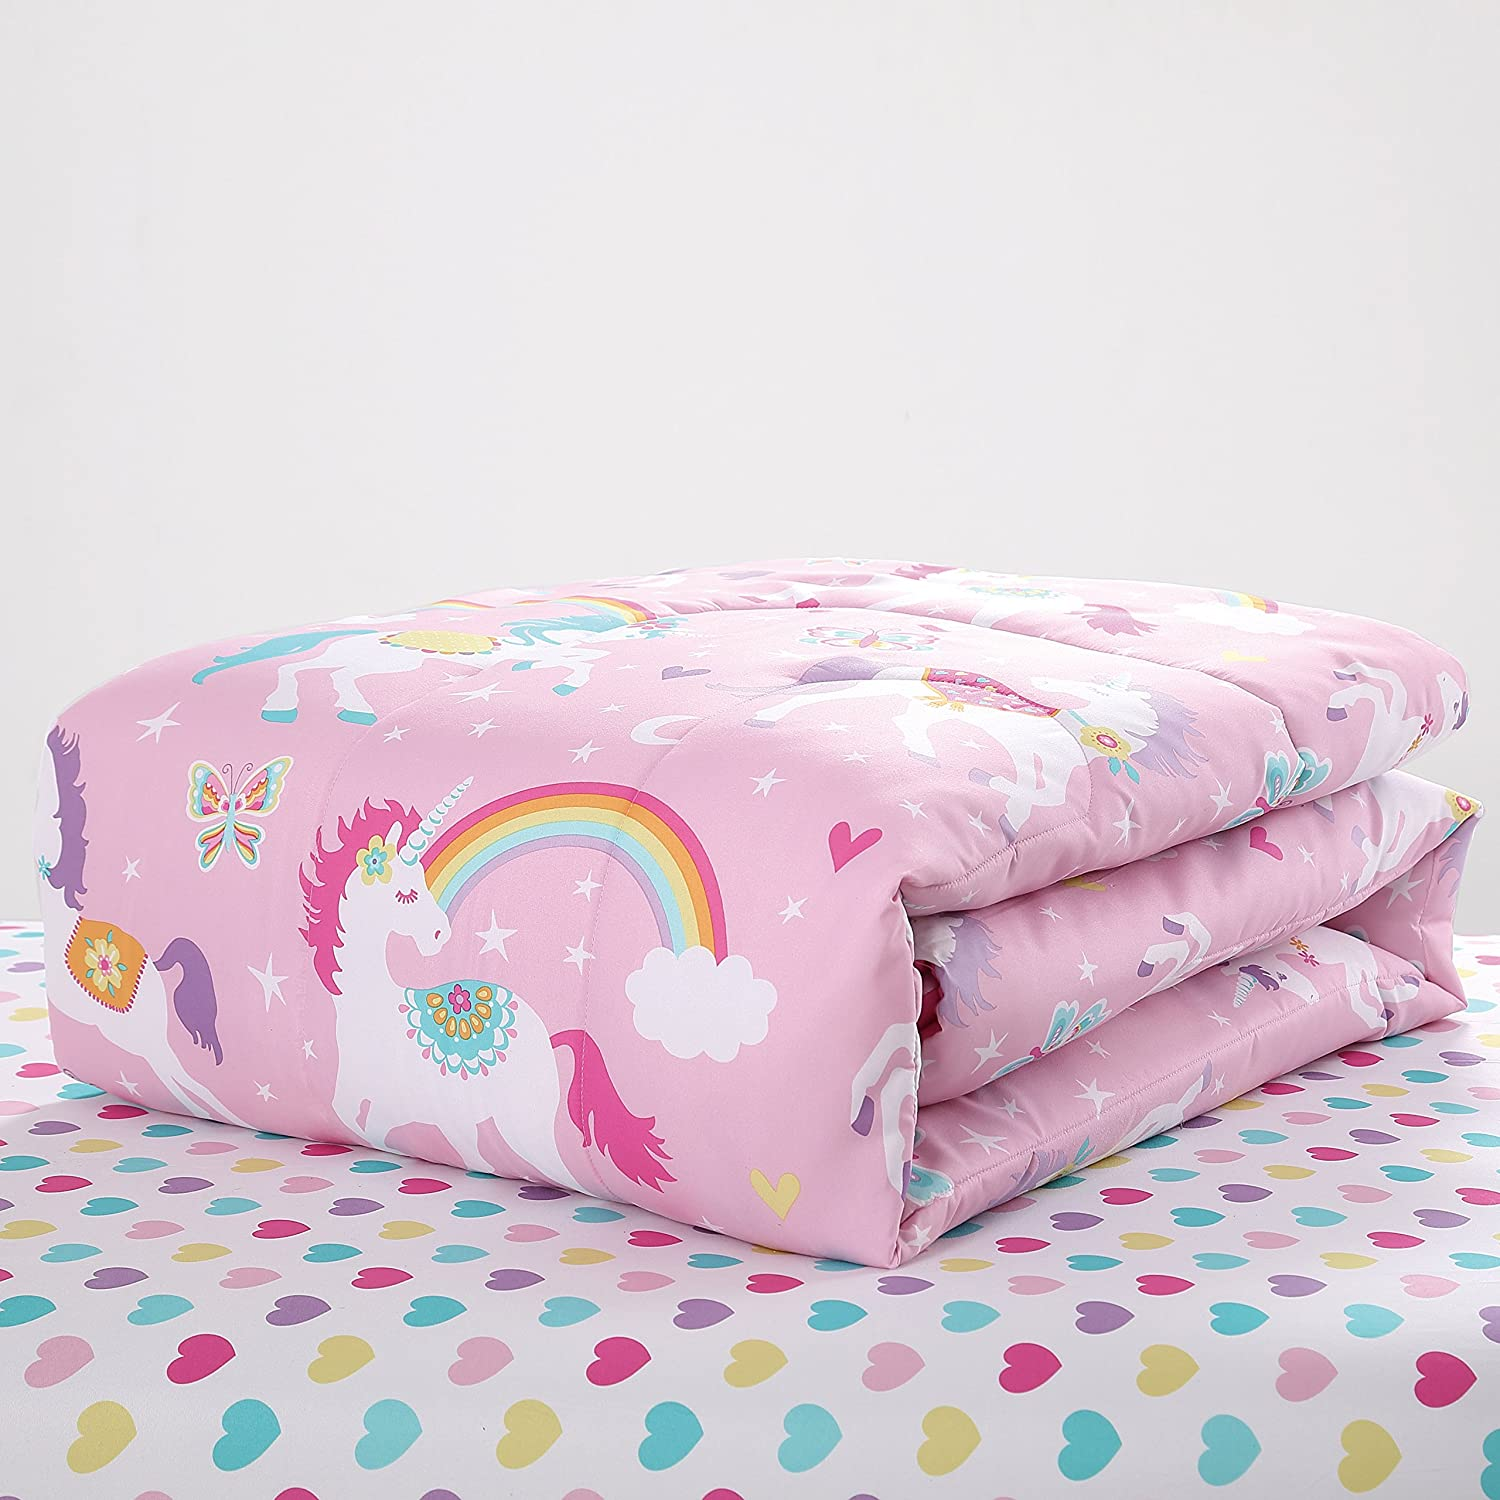 Super Soft Pink Fun and Whimsical Mainstays Kids Rainbow Unicorn With Images of Unicorns Cute Butterflies and Rainbows Girls Bed in a Bag Complete Bedding Set Twin